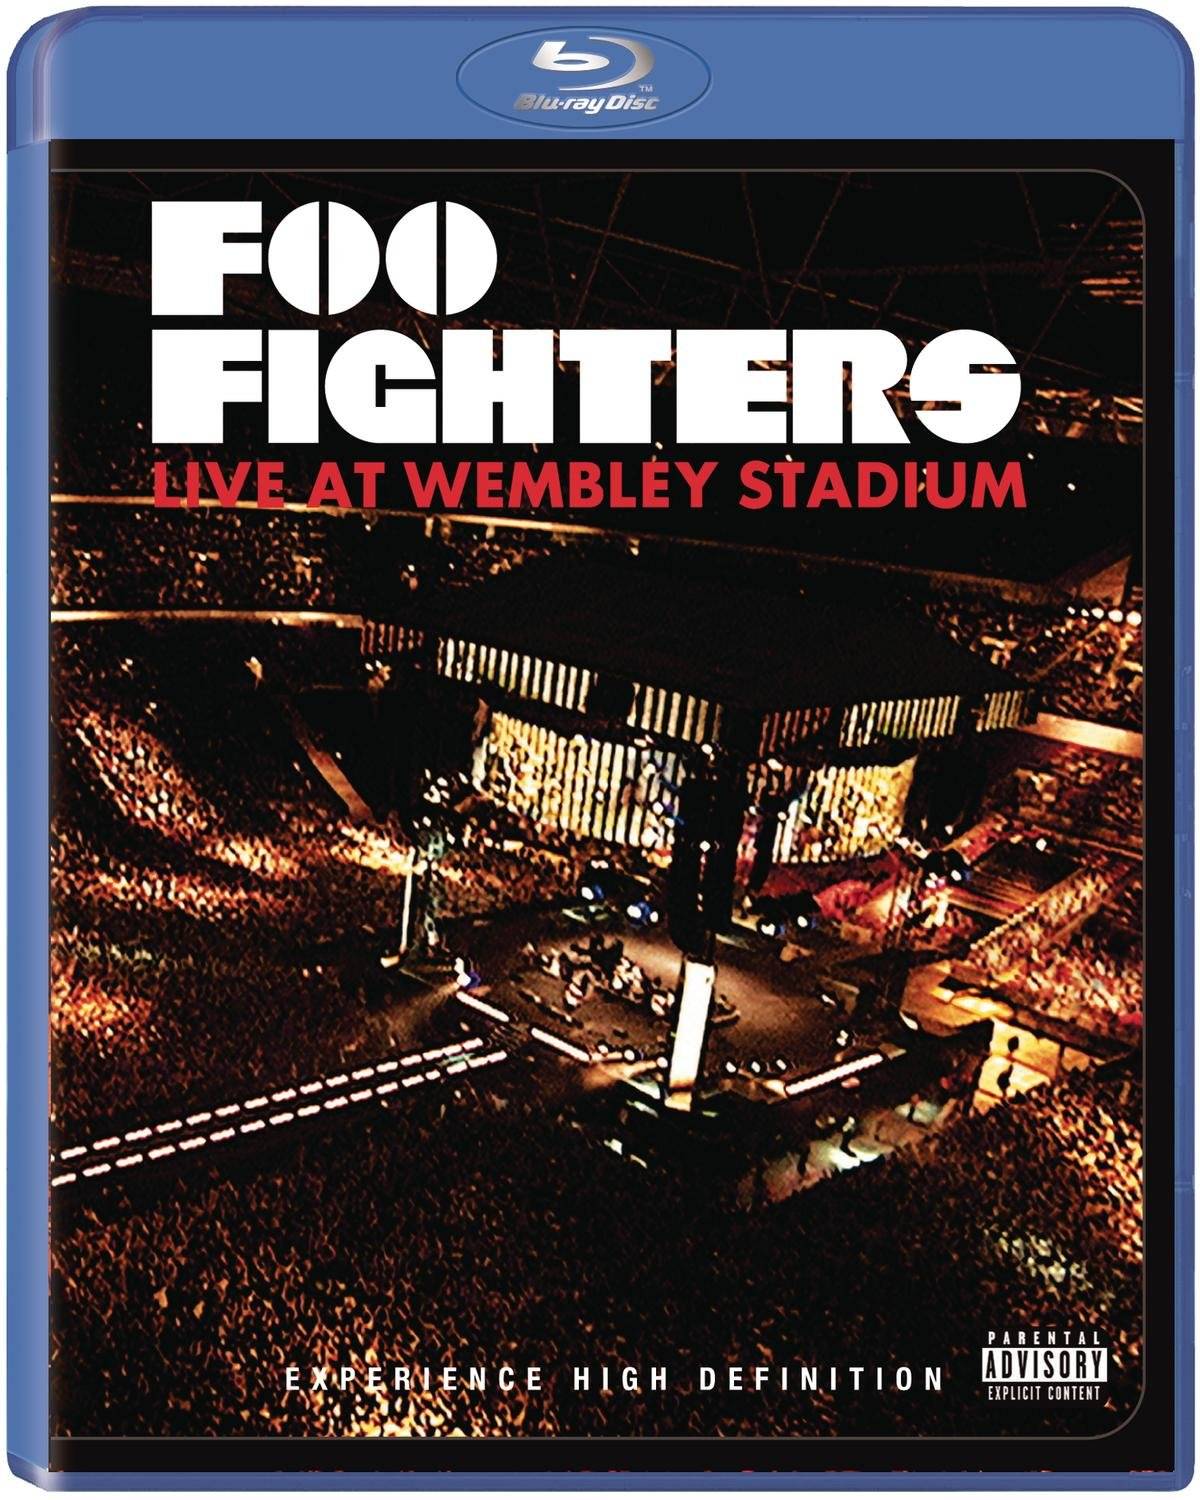 Live At Wembley Stadium [Blu-ray] by Rca